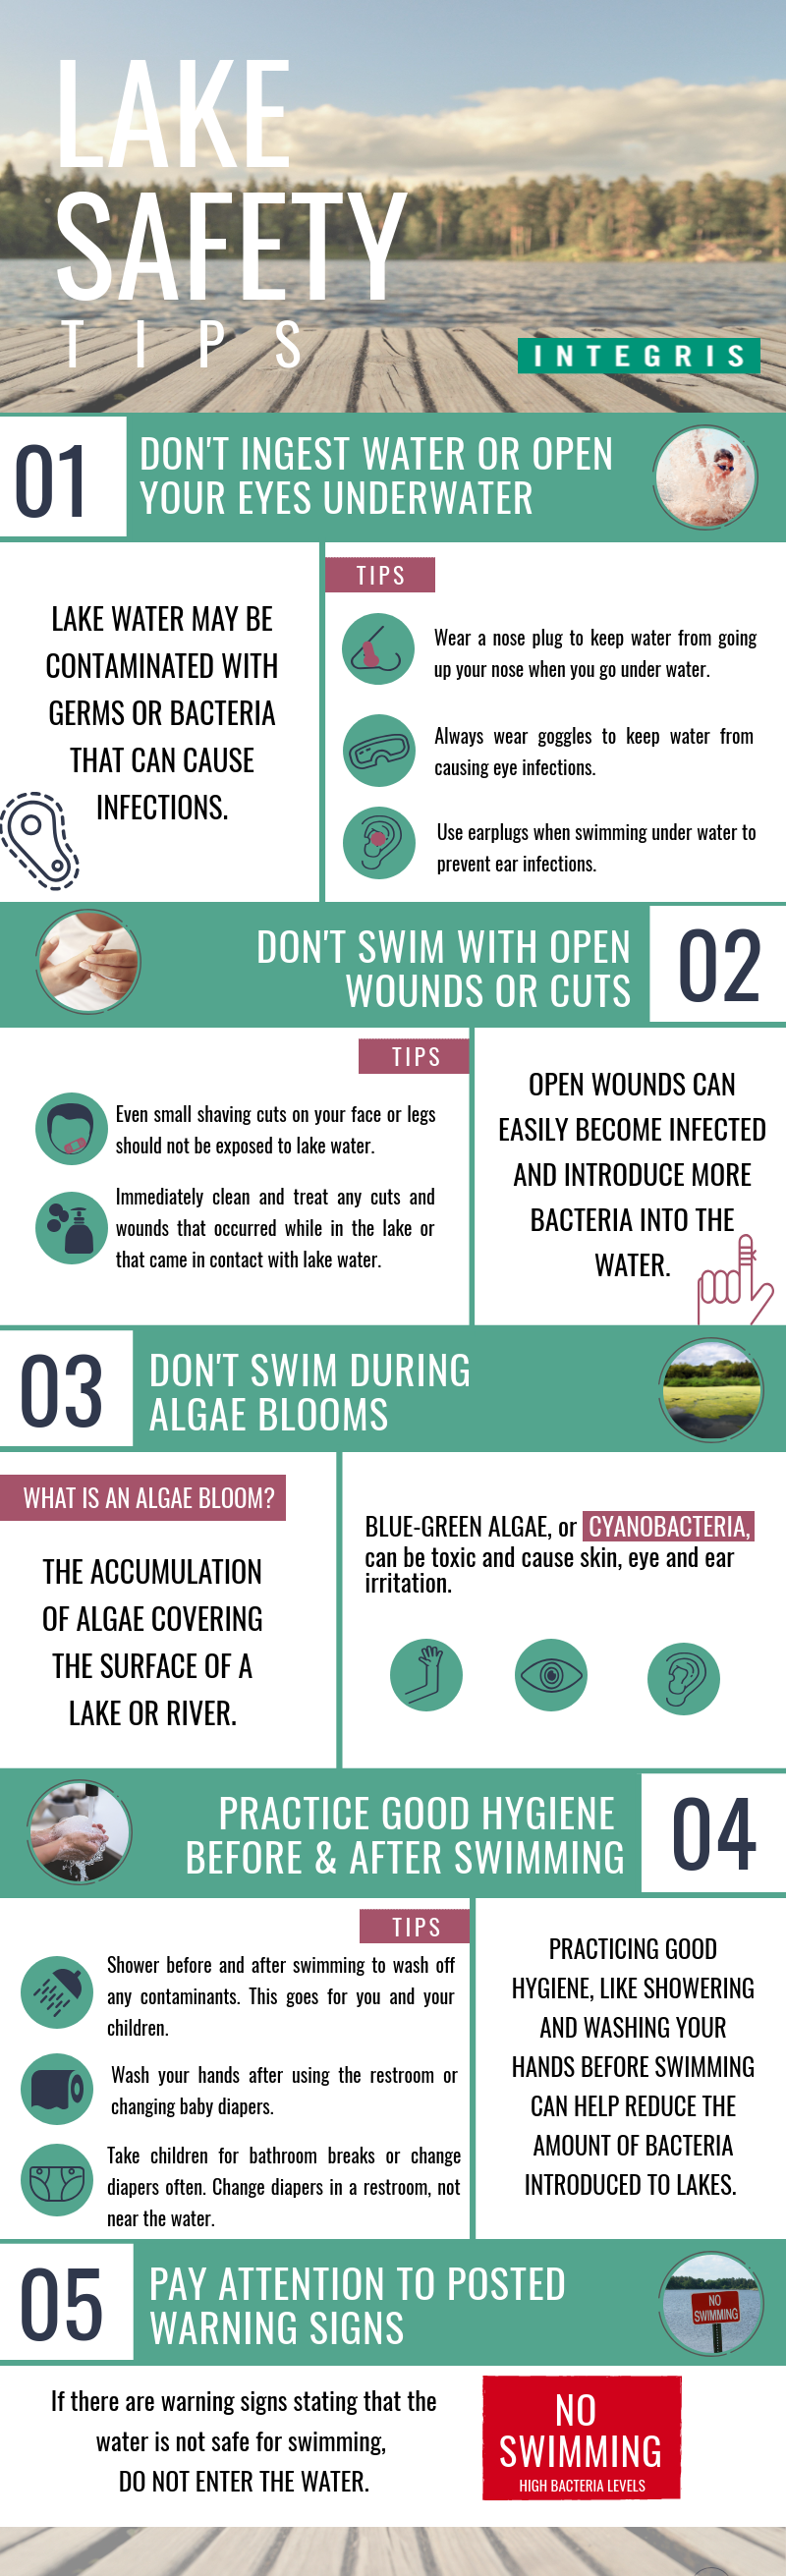 lake safety infographic